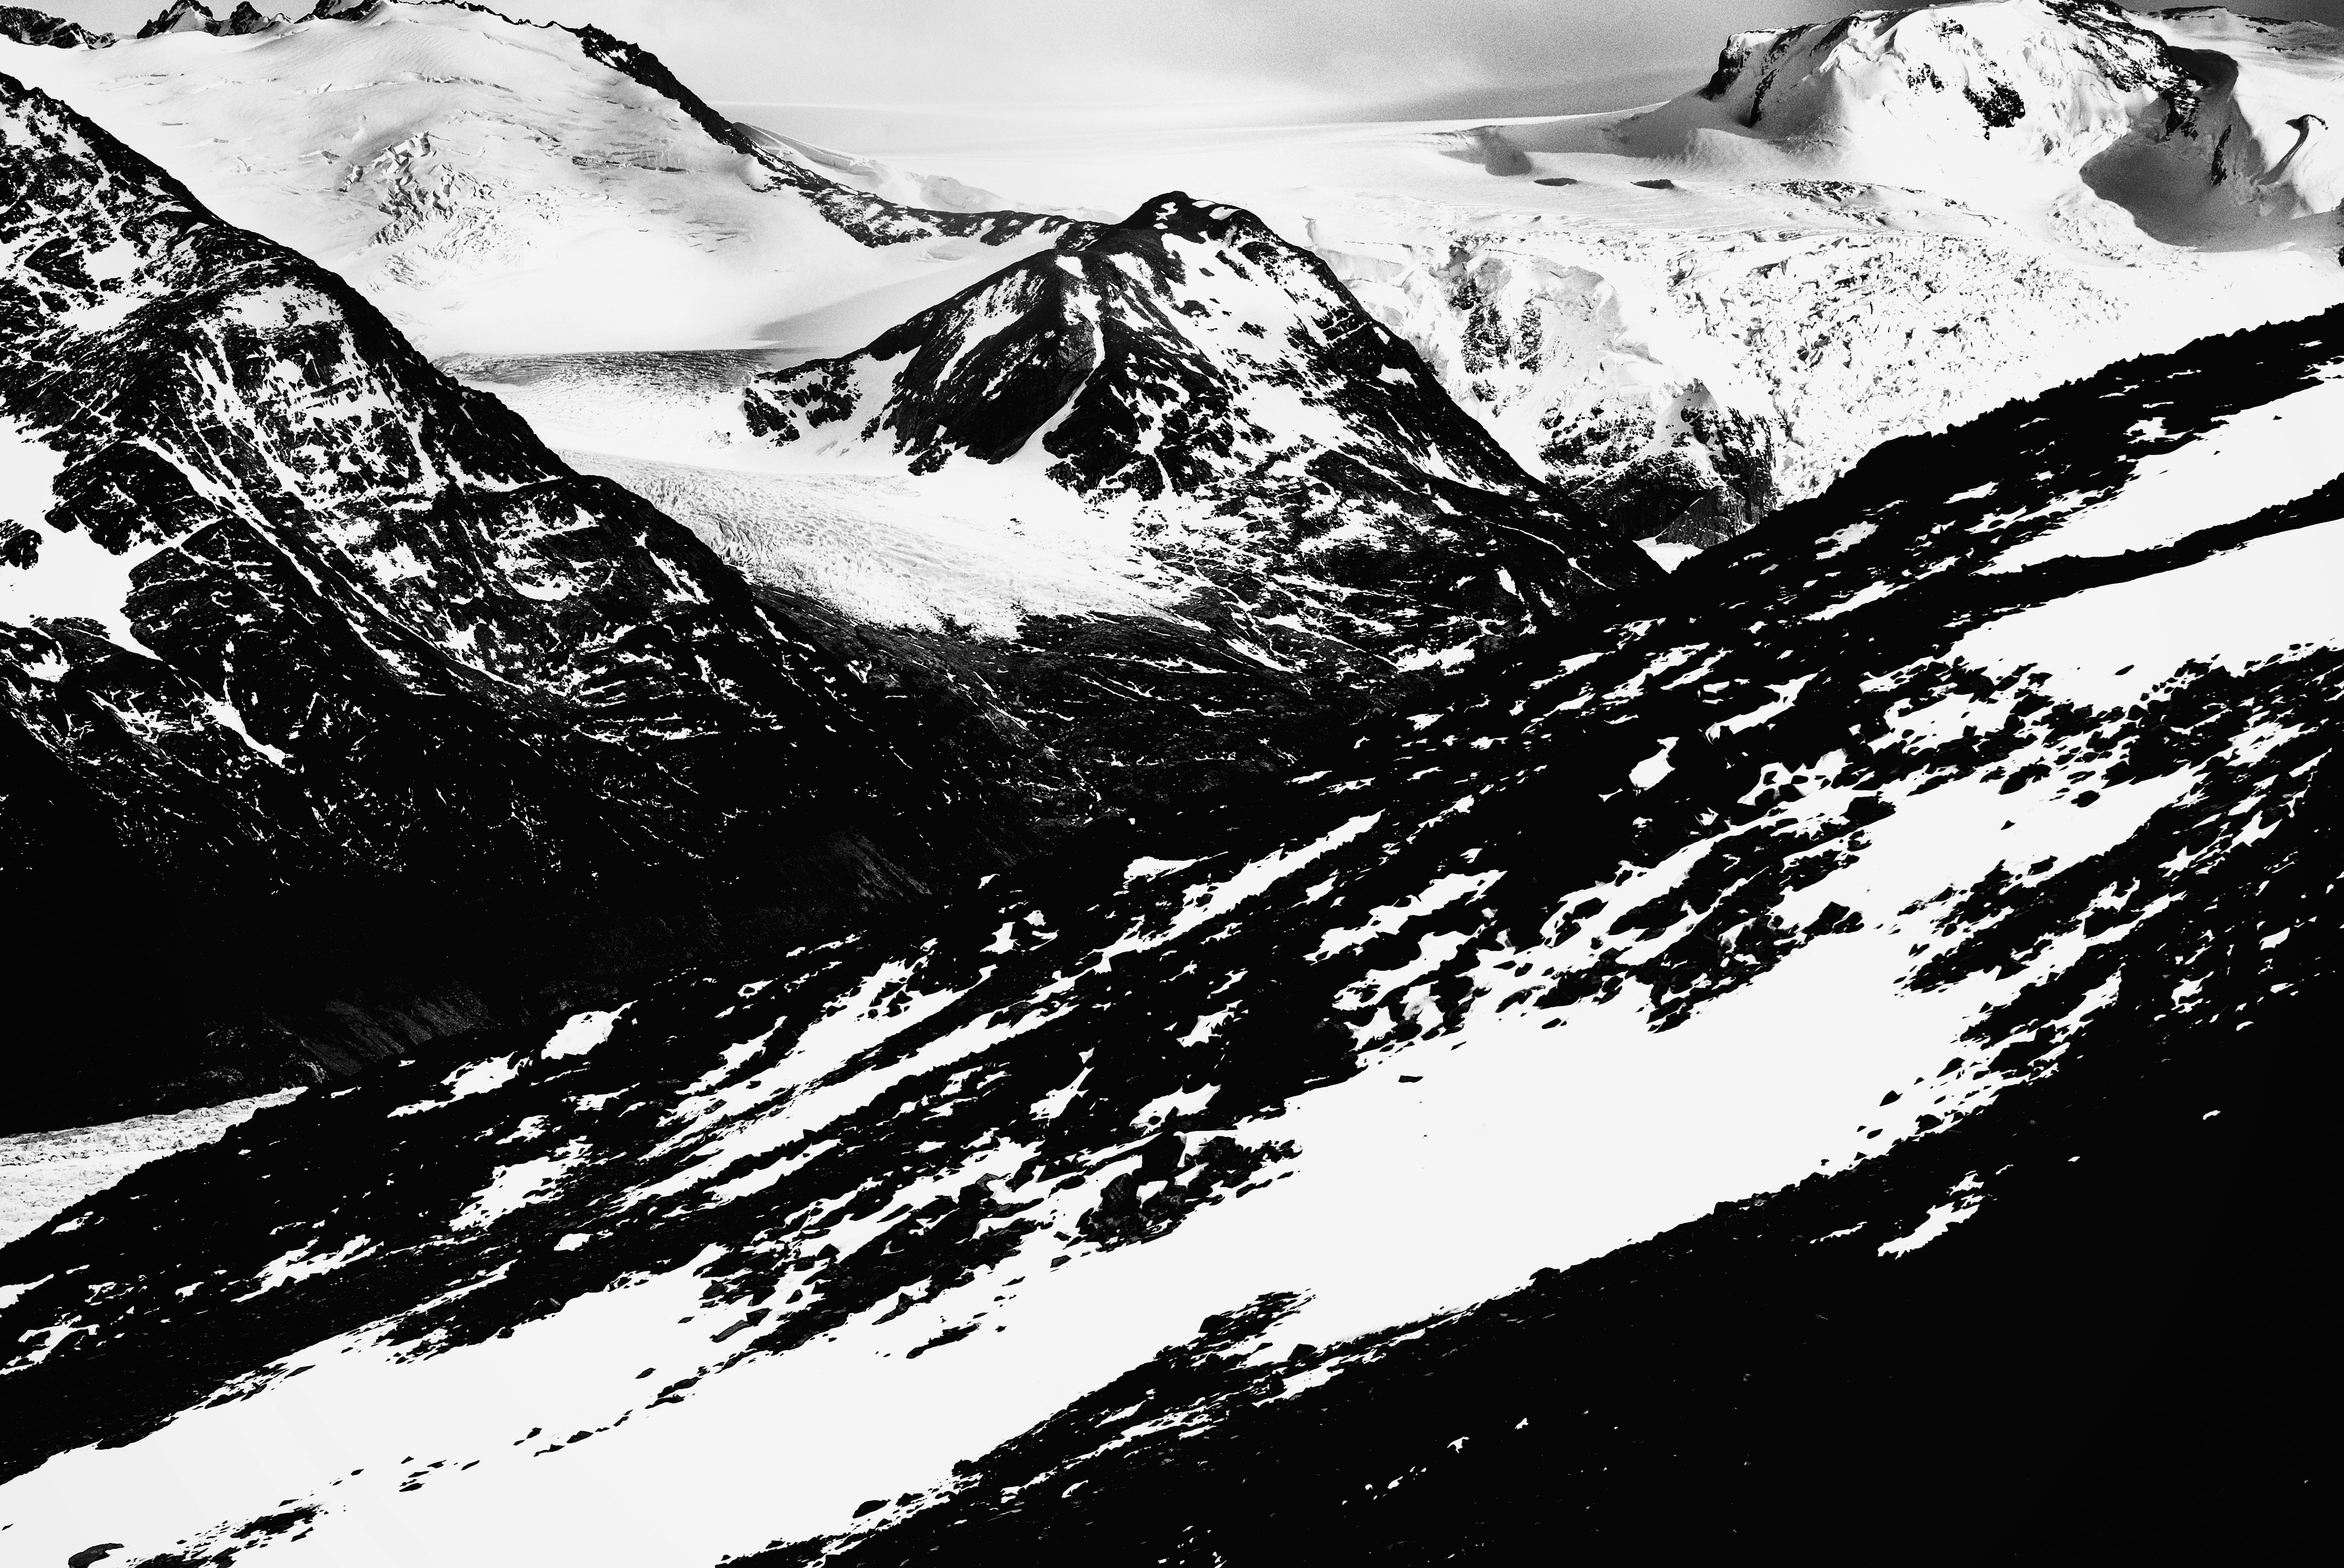 Erick Strange: 'Grey glacier', 2018 Black and White Photograph, Abstract Figurative. Artist Description: Photo taken in National Park Torres del Paine, Patagonia - Chile...